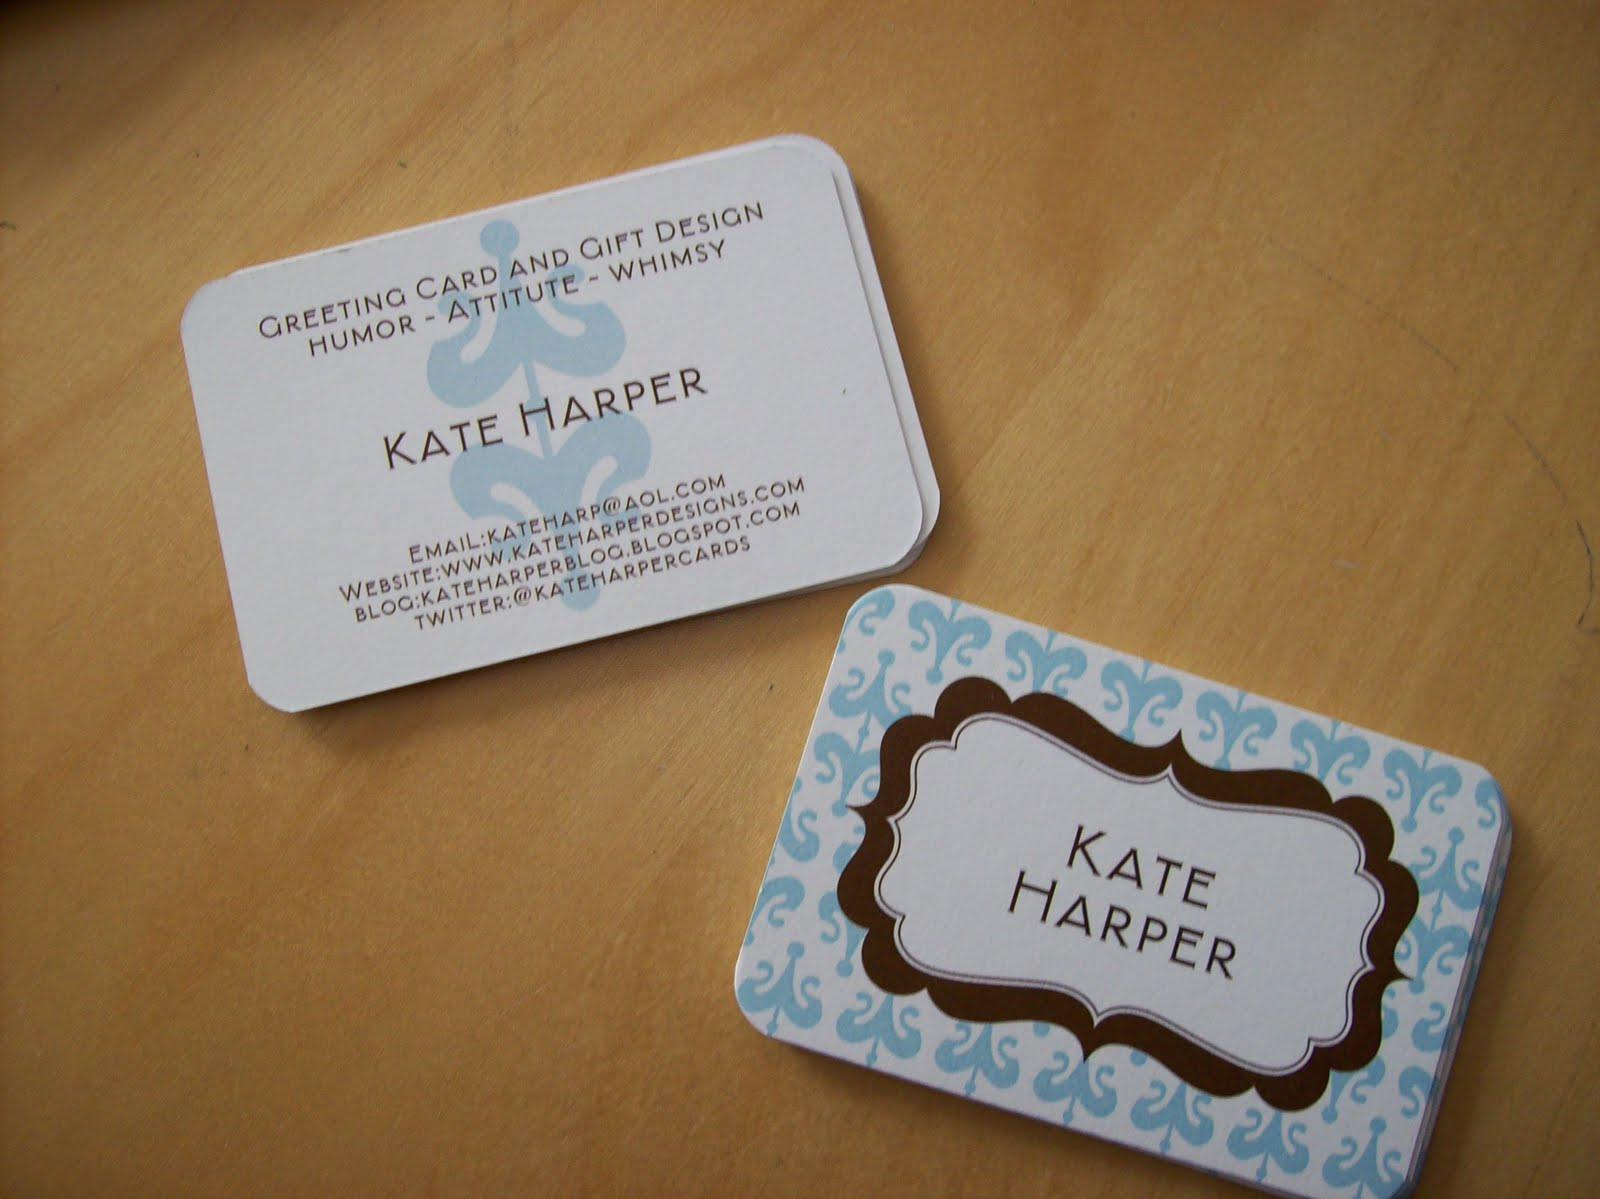 Kate Harper Blog: Calling Cards vs. Business Cards